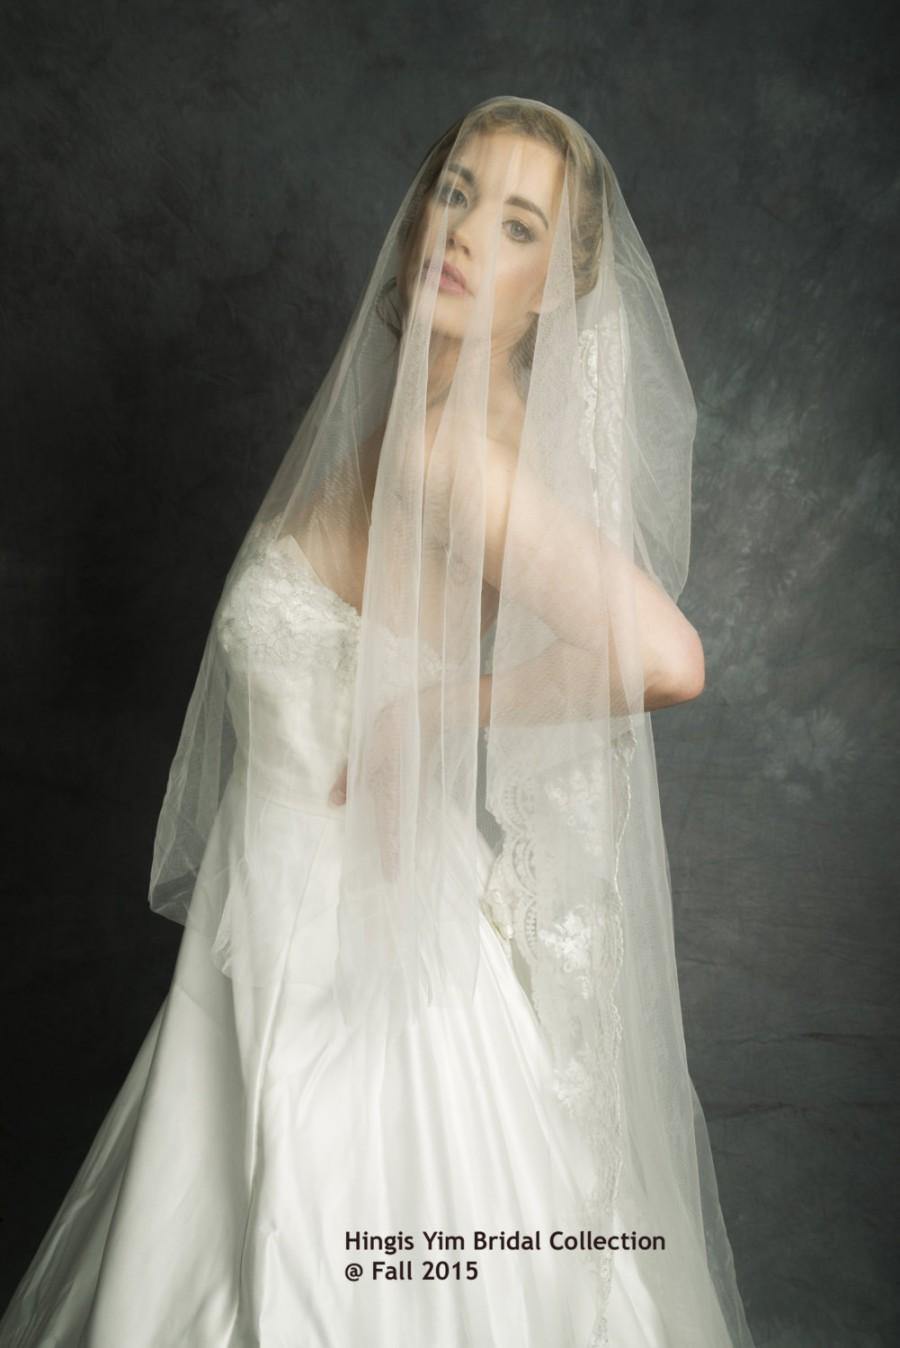 Hochzeit - Light Ivory Vintage Style Lace beads Bridal Wedding 2 layers / 2Tiers chapel veil / soft Tulle Cap veil in 205cm is for sale.